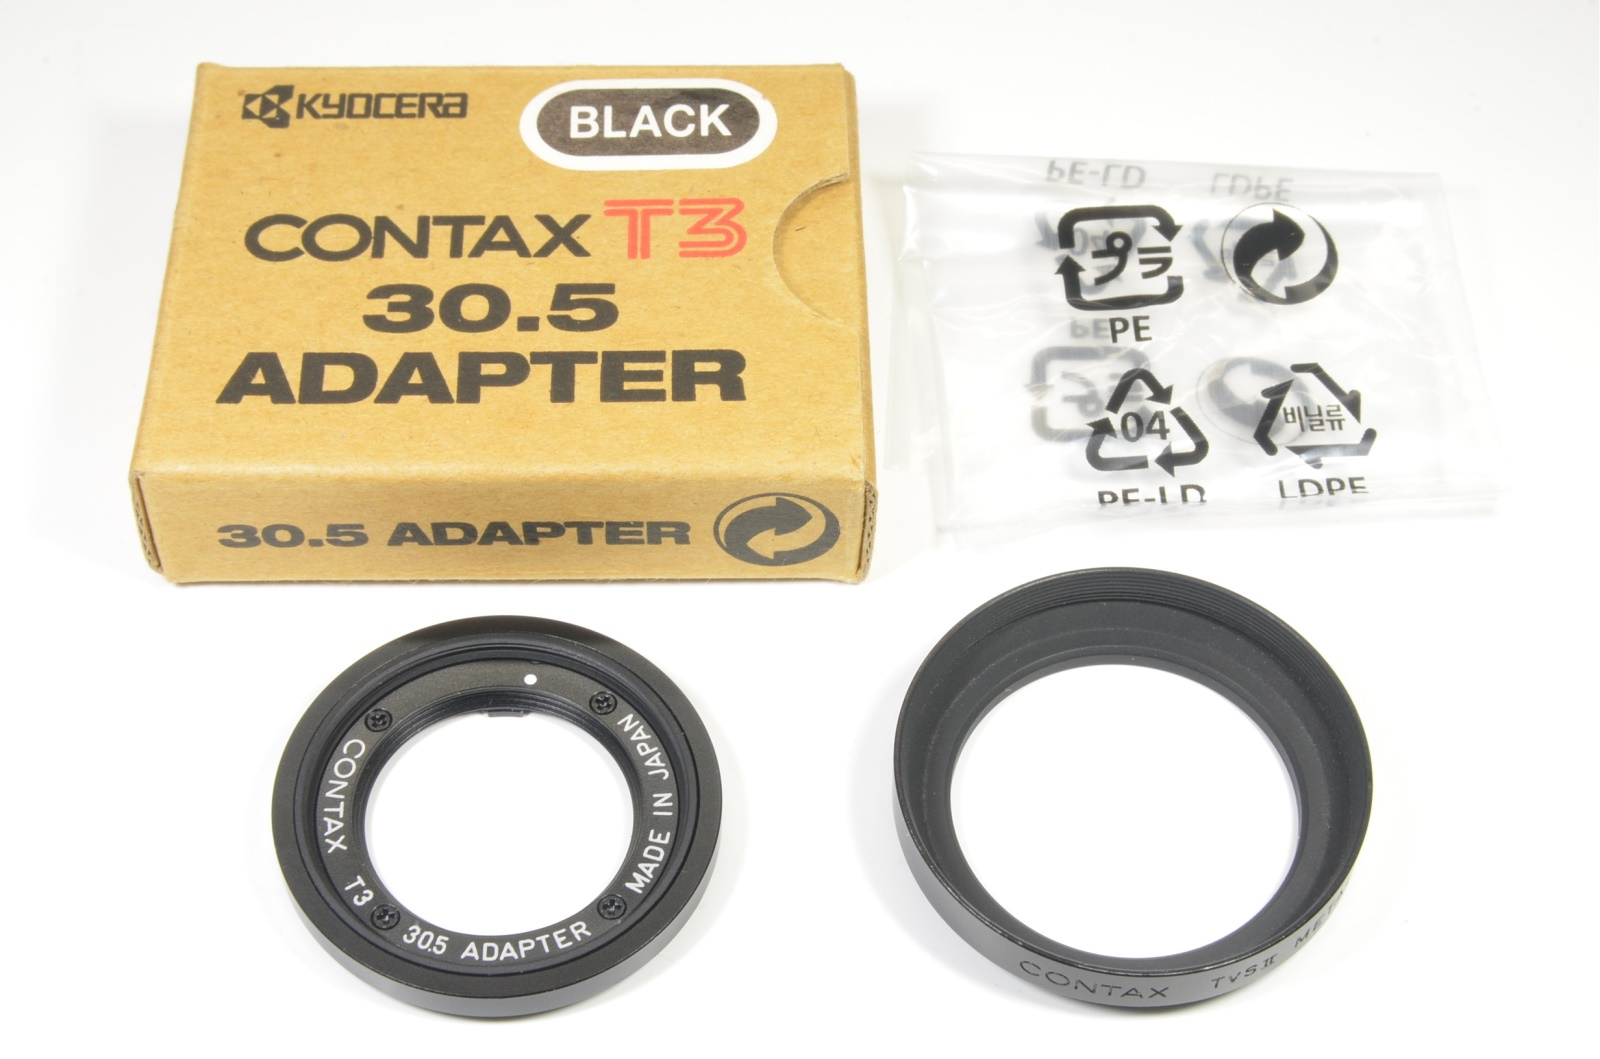 contax t3 30.5 adapter and contax tvsii metal hood black